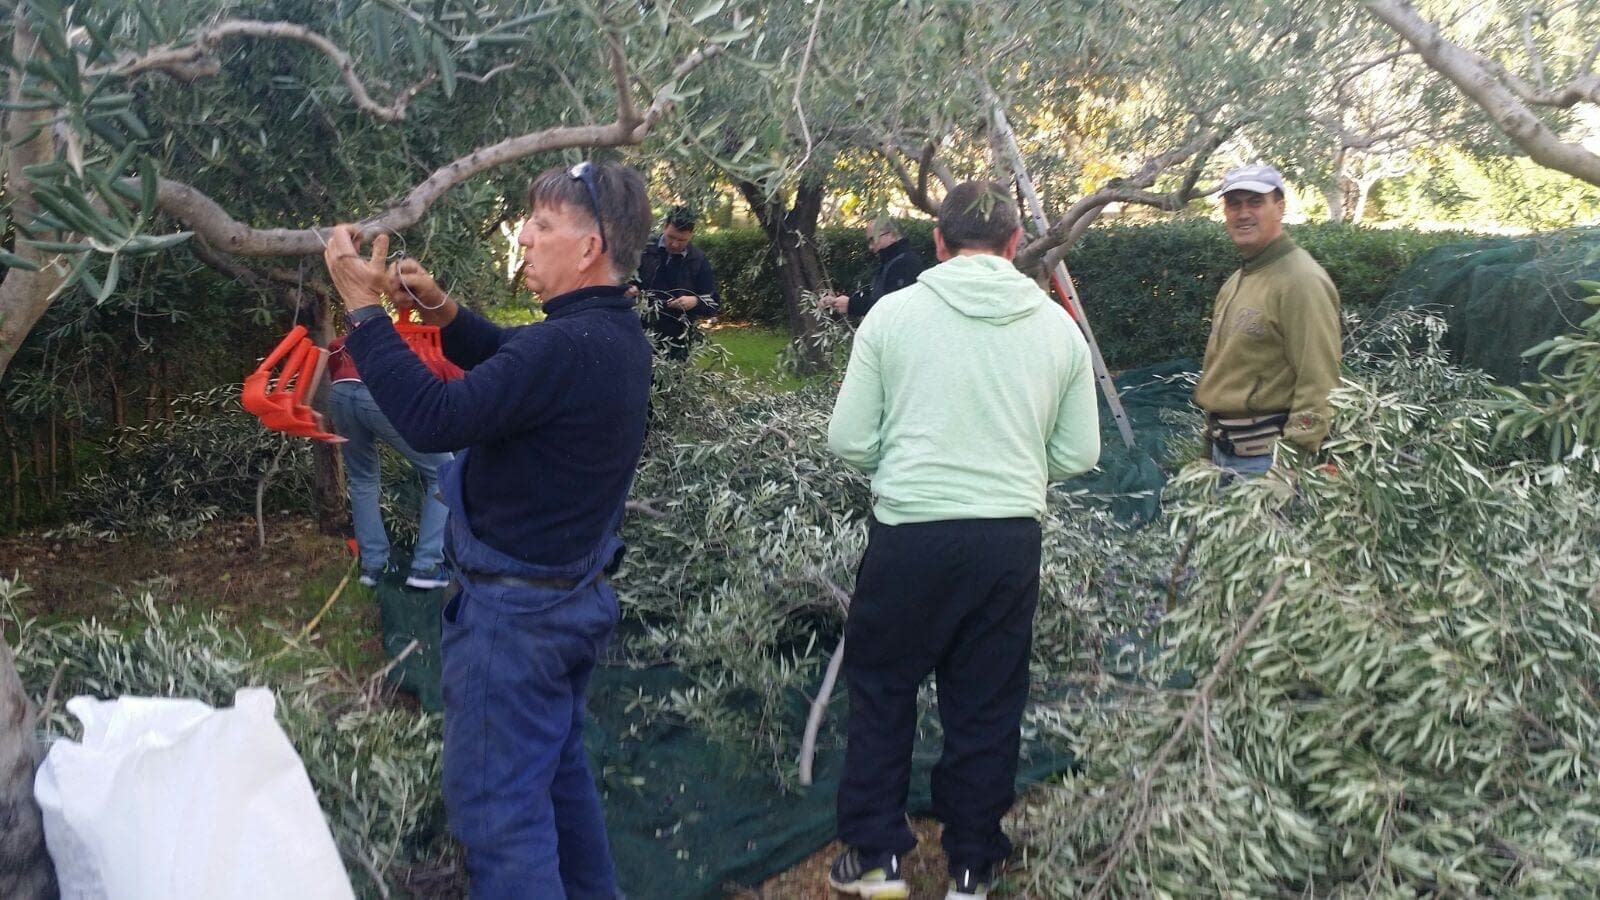 europe-production-world-volunteers-lend-a-hand-in-italys-olive-harvest-to-help-those-in-need-olive-oil-times